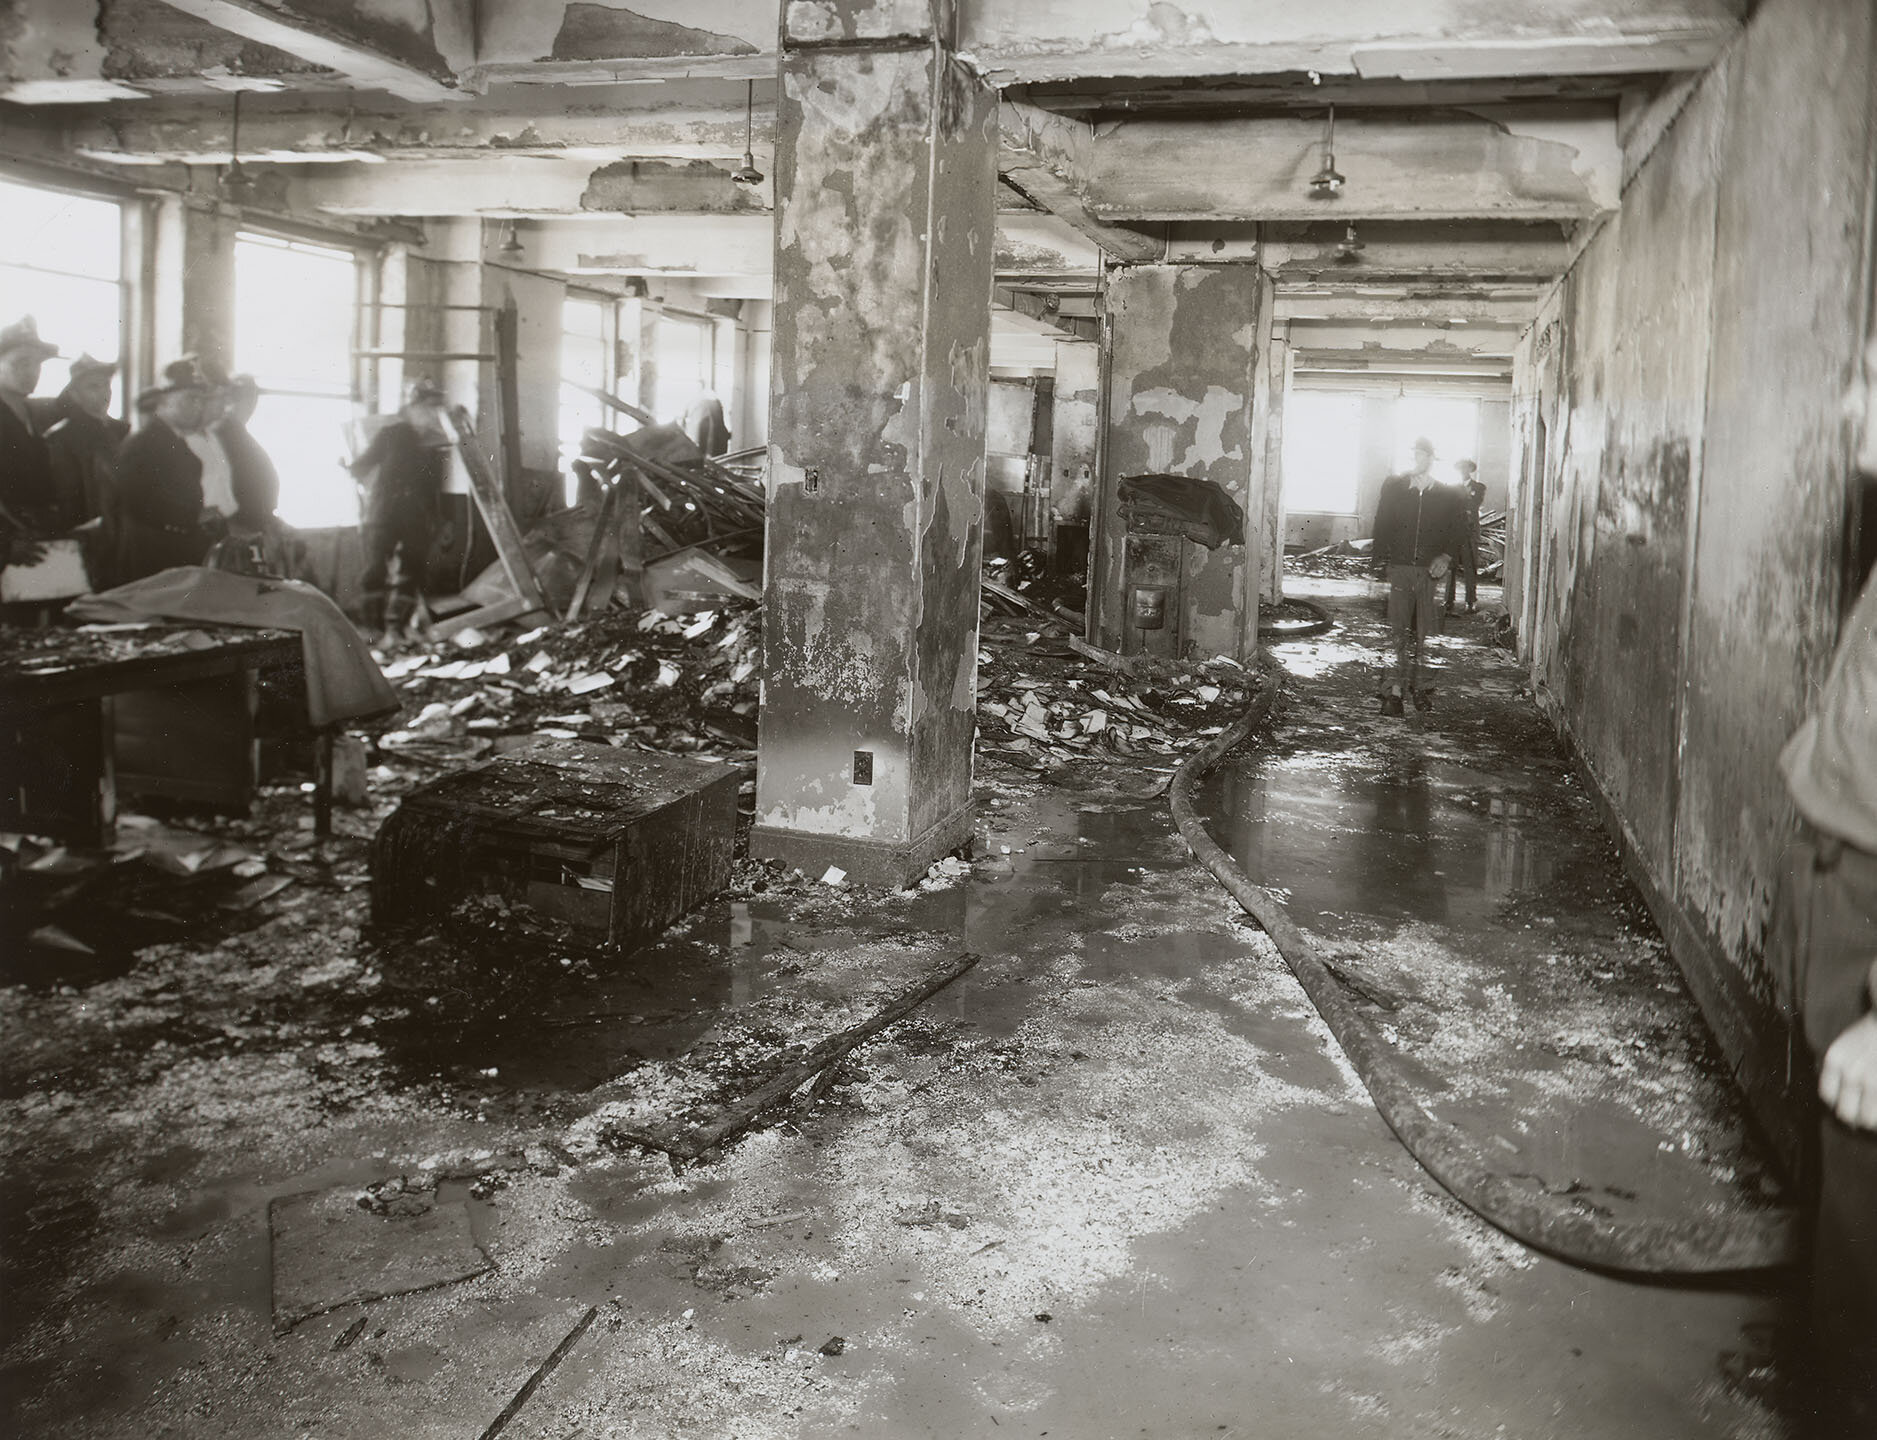 Empire State Building Disaster: Interior, S corner, 79th Fl., facing N; 12:05 pm, July 28, 1945. Mayor LaGuardia Collection, NYC Municipal Archives.